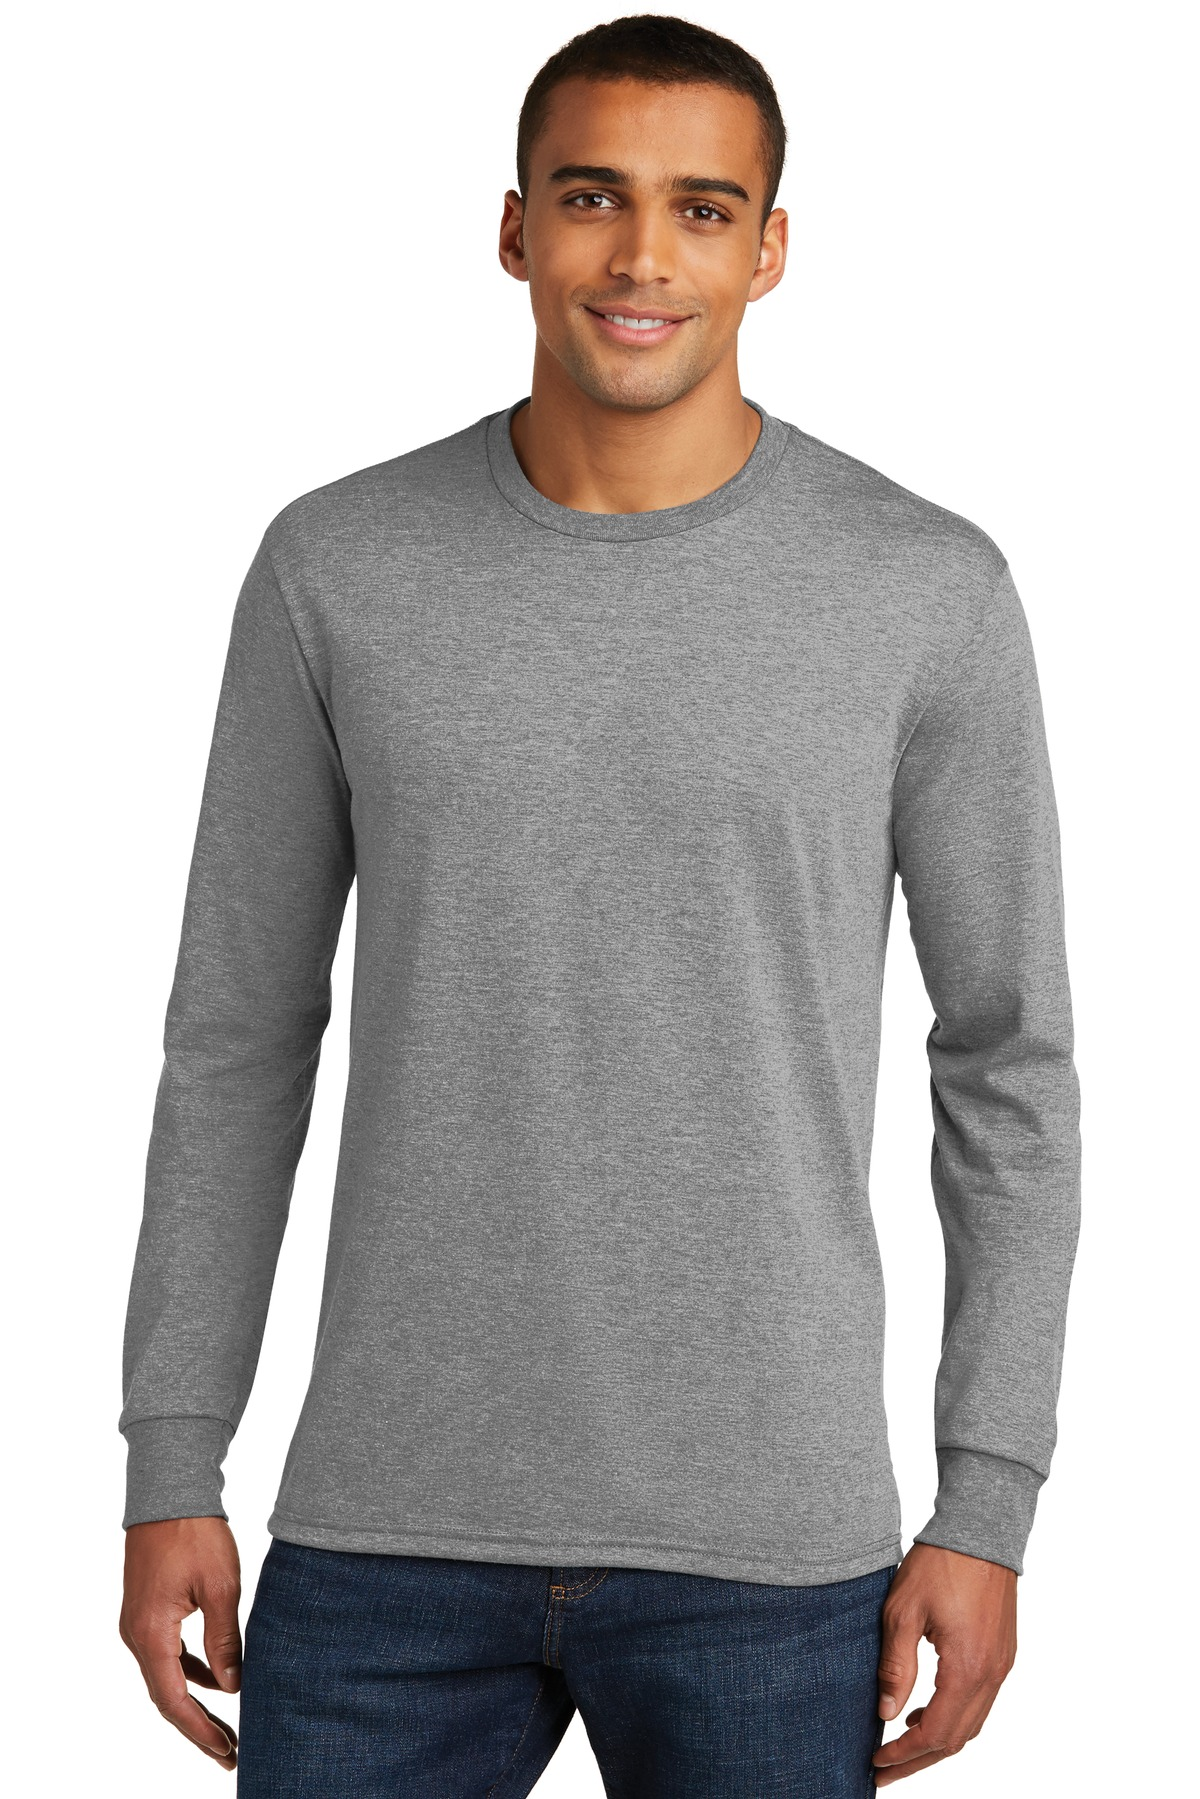 District ®  Perfect Tri ®  Long Sleeve Tee . DM132 - Grey Frost